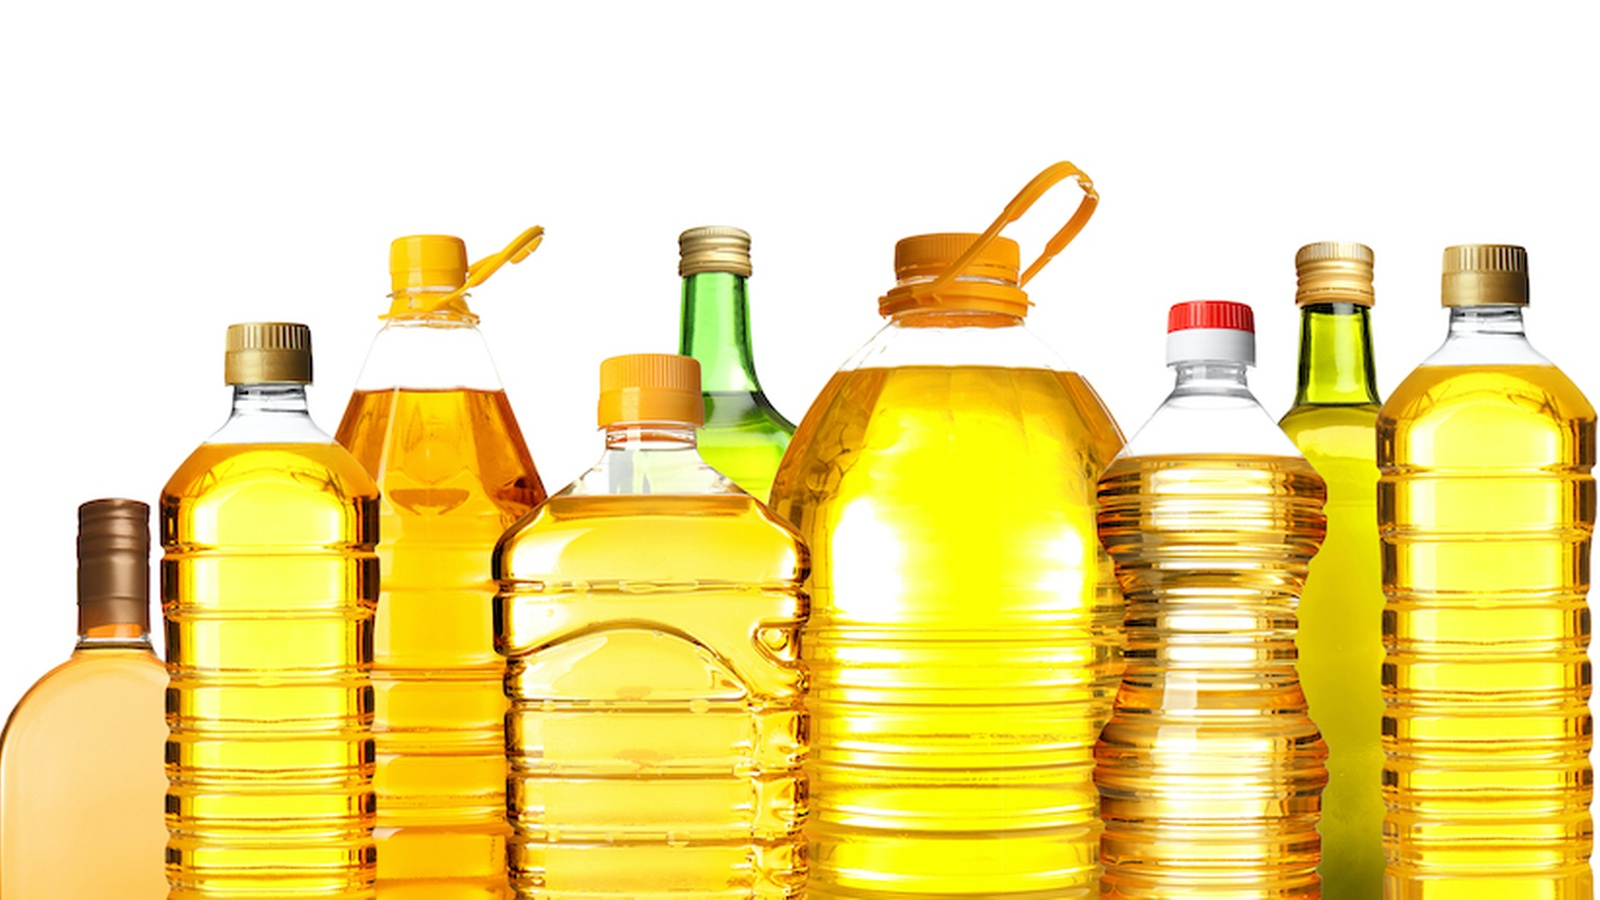 Cooking Vegetable Oil Releases Toxic Chemicals Linked To Cancer